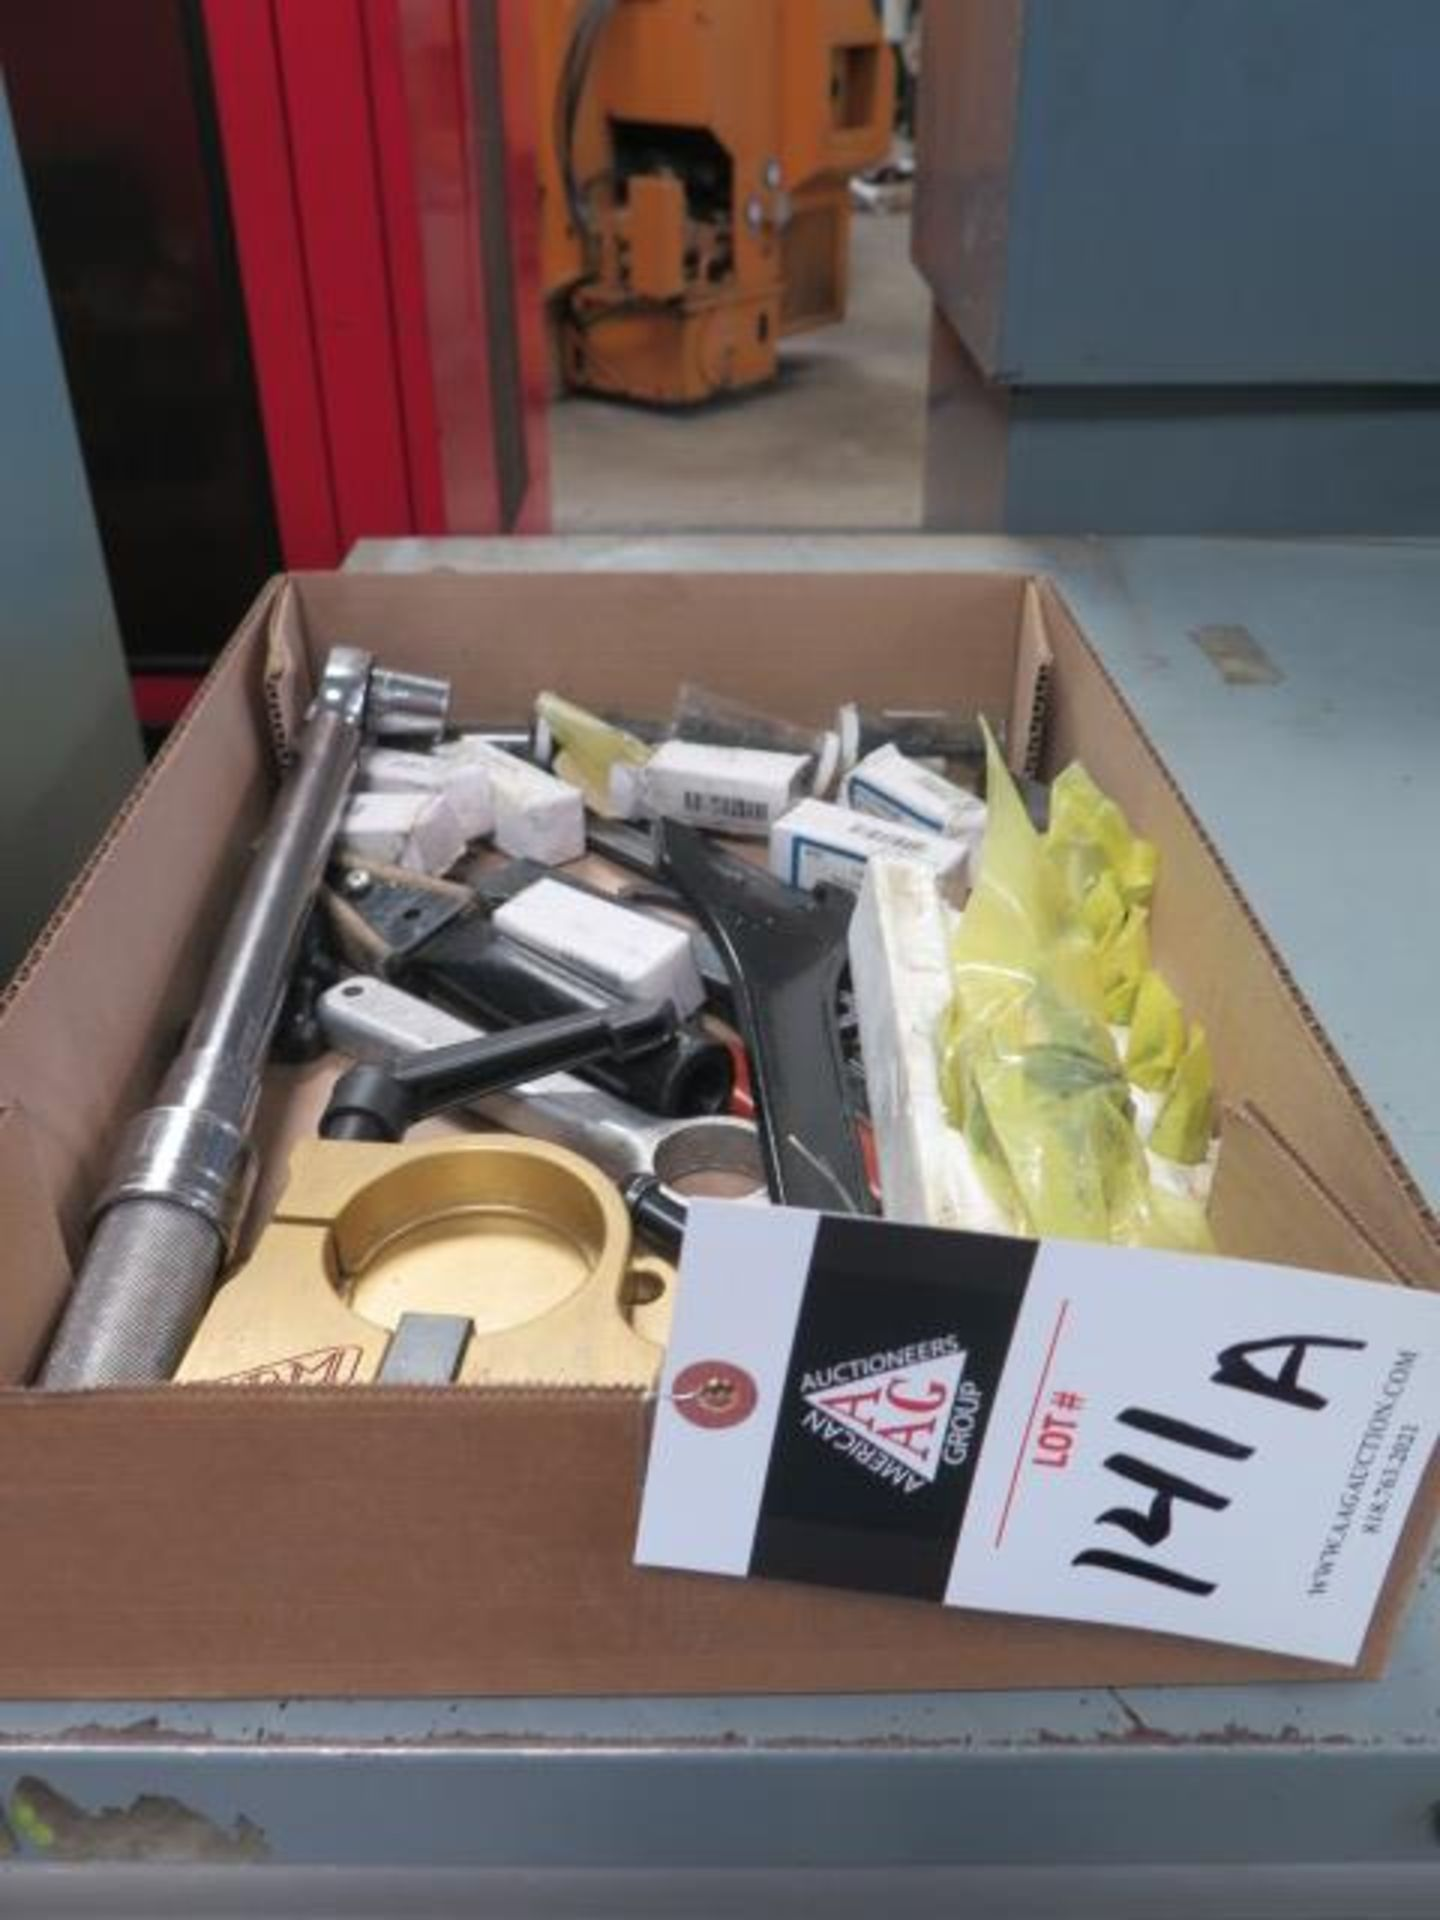 Taper-Tool Tooling (SOLD AS-IS - NO WARRANTY)